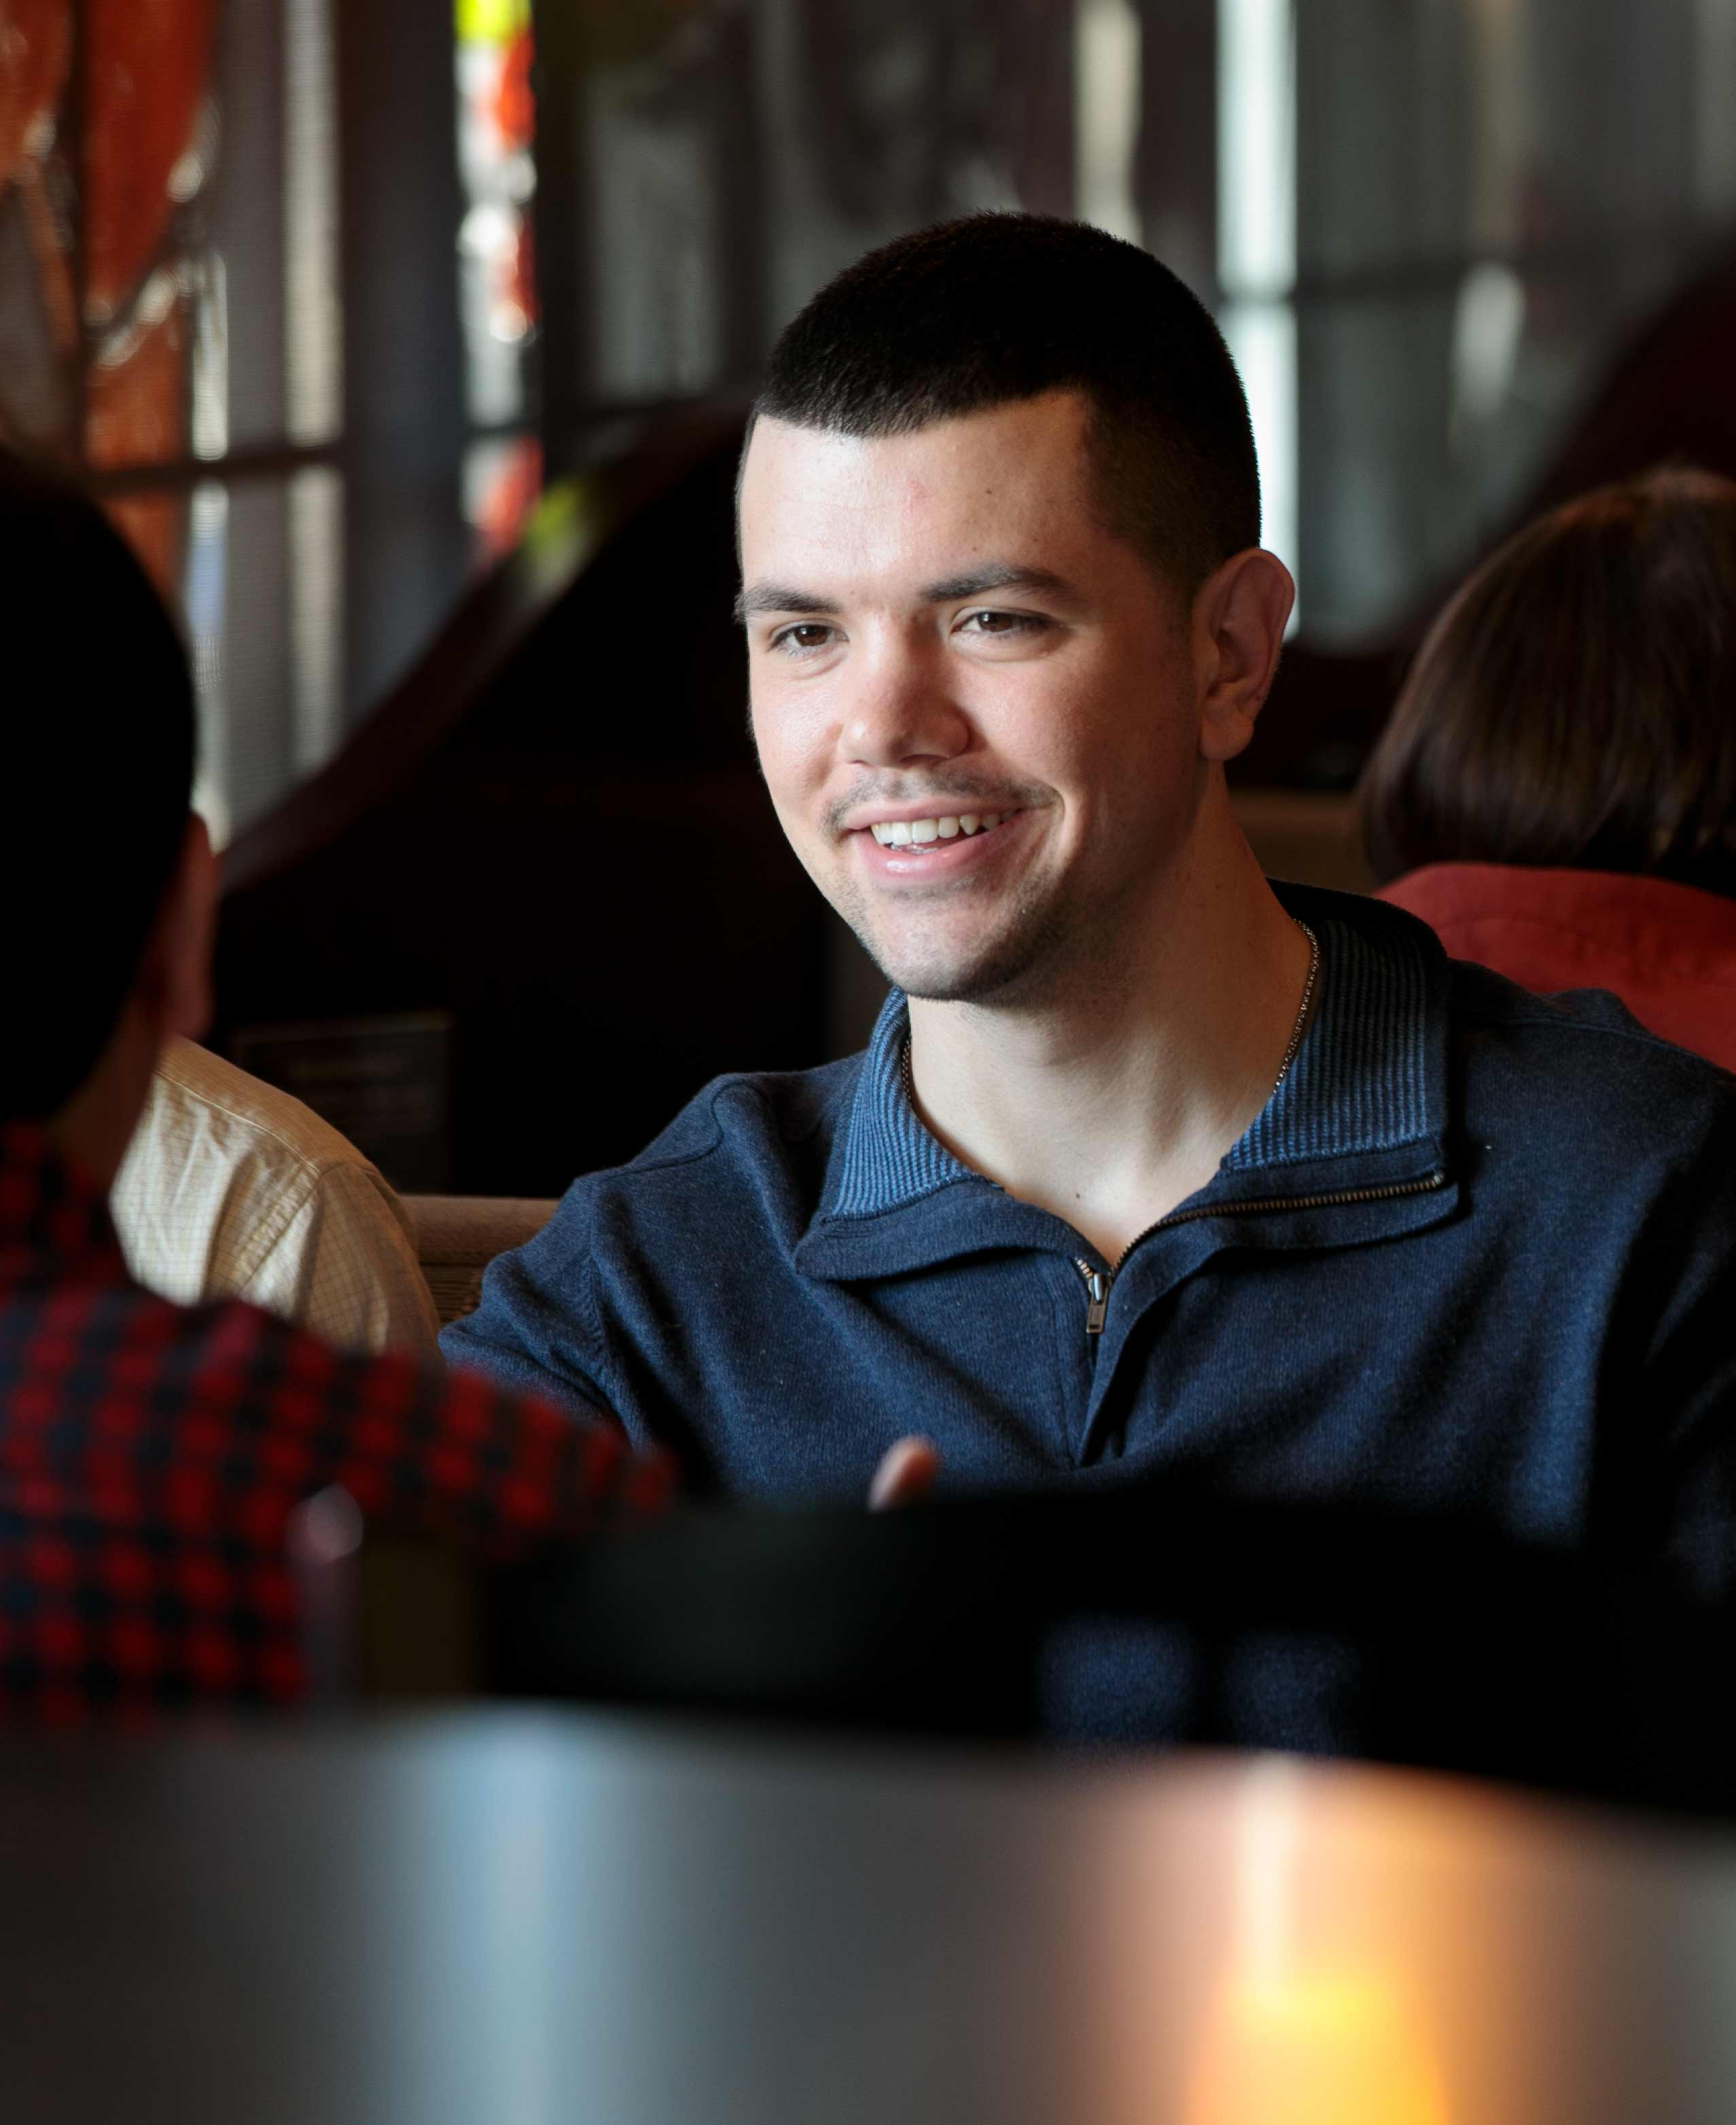 First-year Ohio Northern University College of Law student Matt Sharp studies at Cosi at Northern.